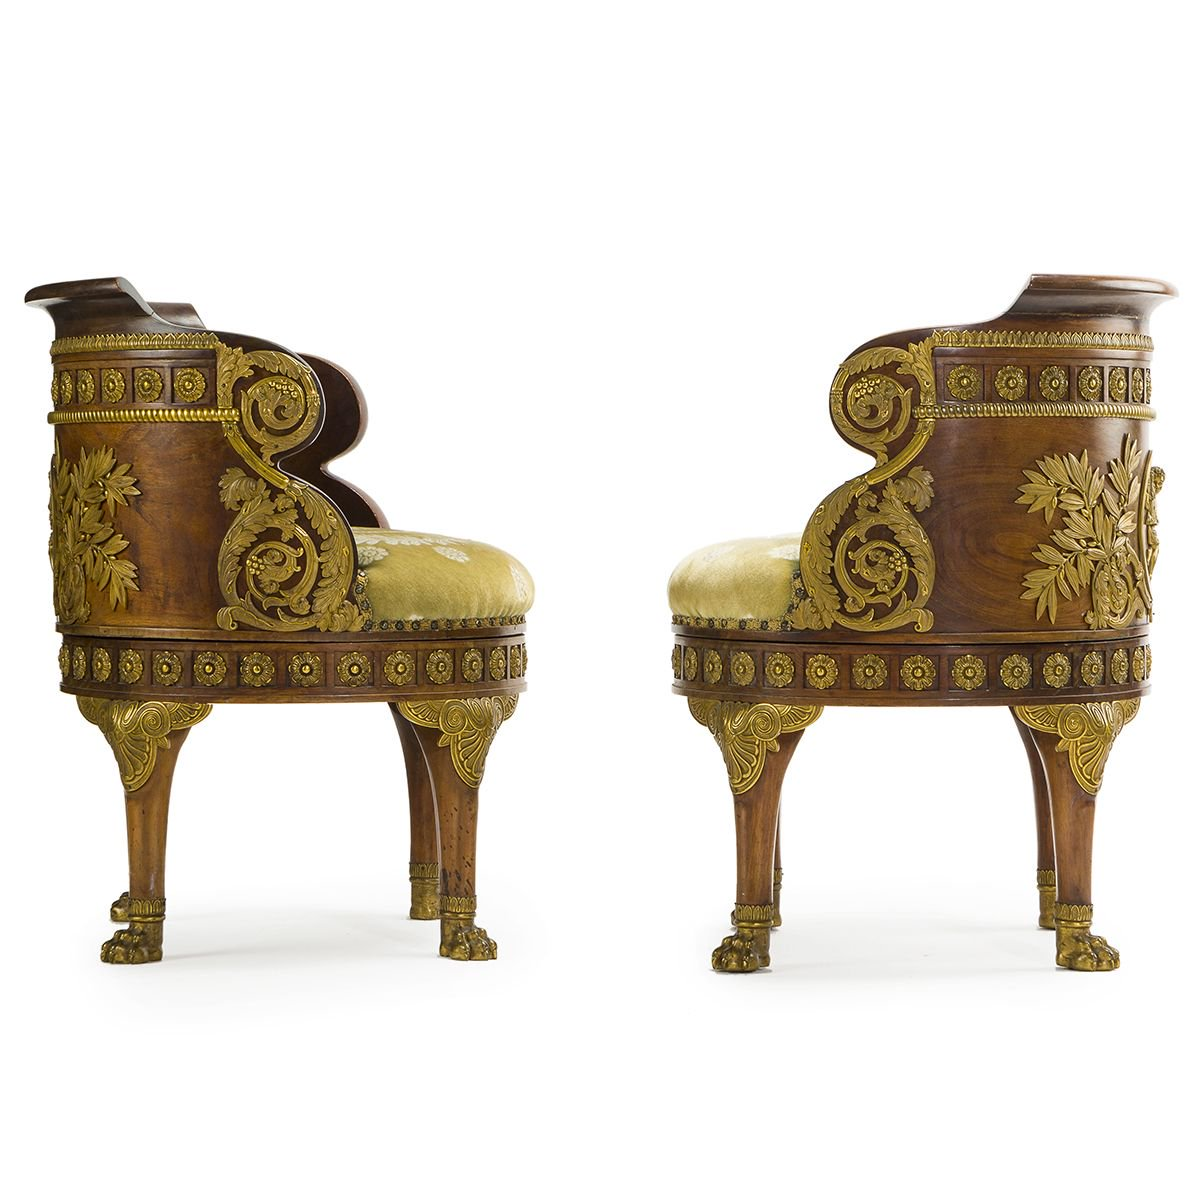 A pair of French Empire mahogany and gilt bronze-mounted fauteuils de bureau. . After the design by François-Honoré-Georges Jacob-Desmalter for Jérôme Bonaparte, King of Westphalia and brother of Napoleon Bonaparte. . #fauteuils #frencharmchairs #onlineauction #auction